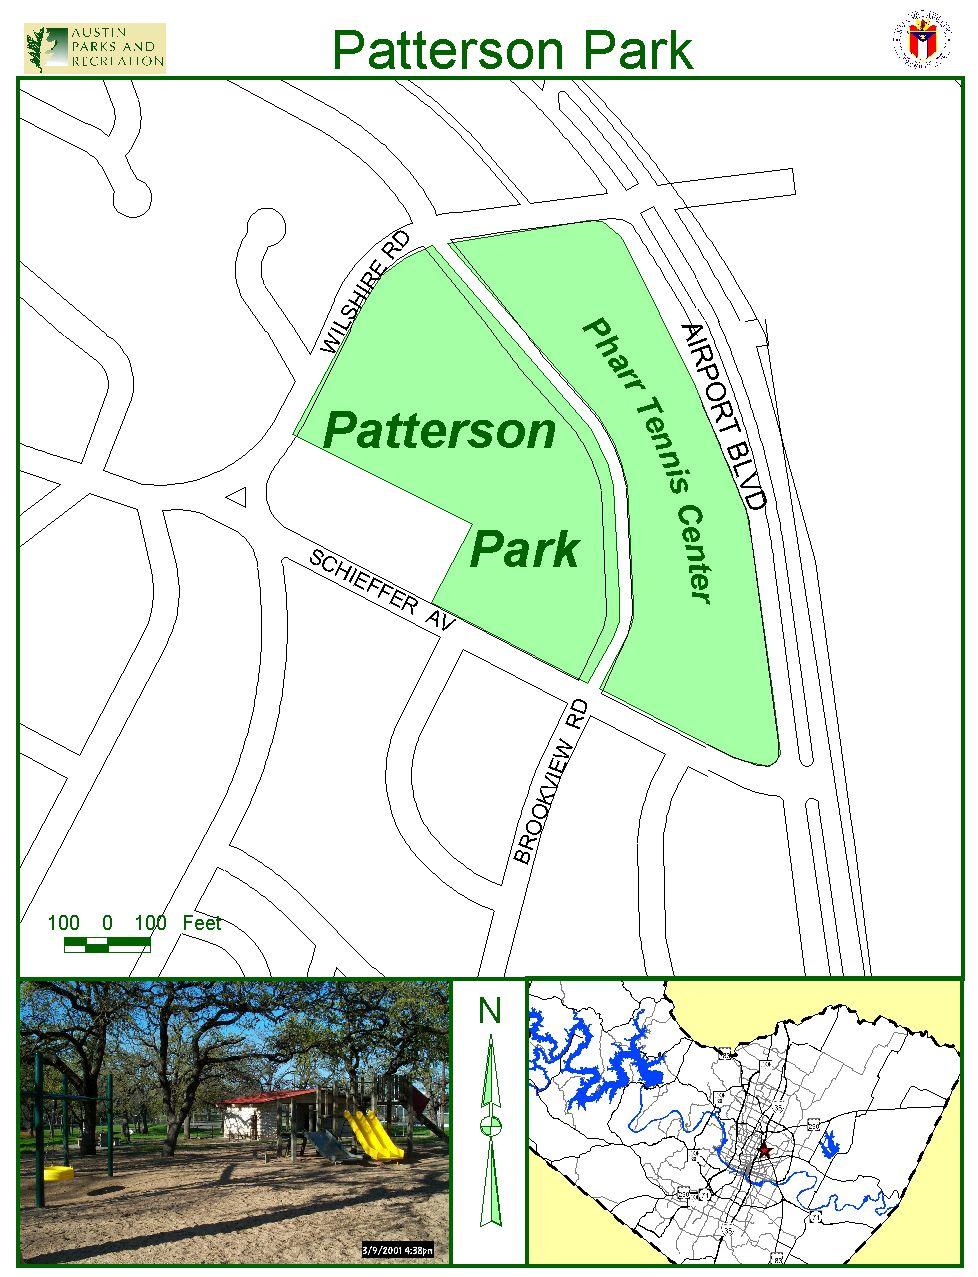 neighborhood maps with Patterson Park Map on File Map of Beverly Grove  Los Angeles  California likewise 6182714 furthermore 25372755 likewise North Oaks Park Map further Merrick State Park Map.